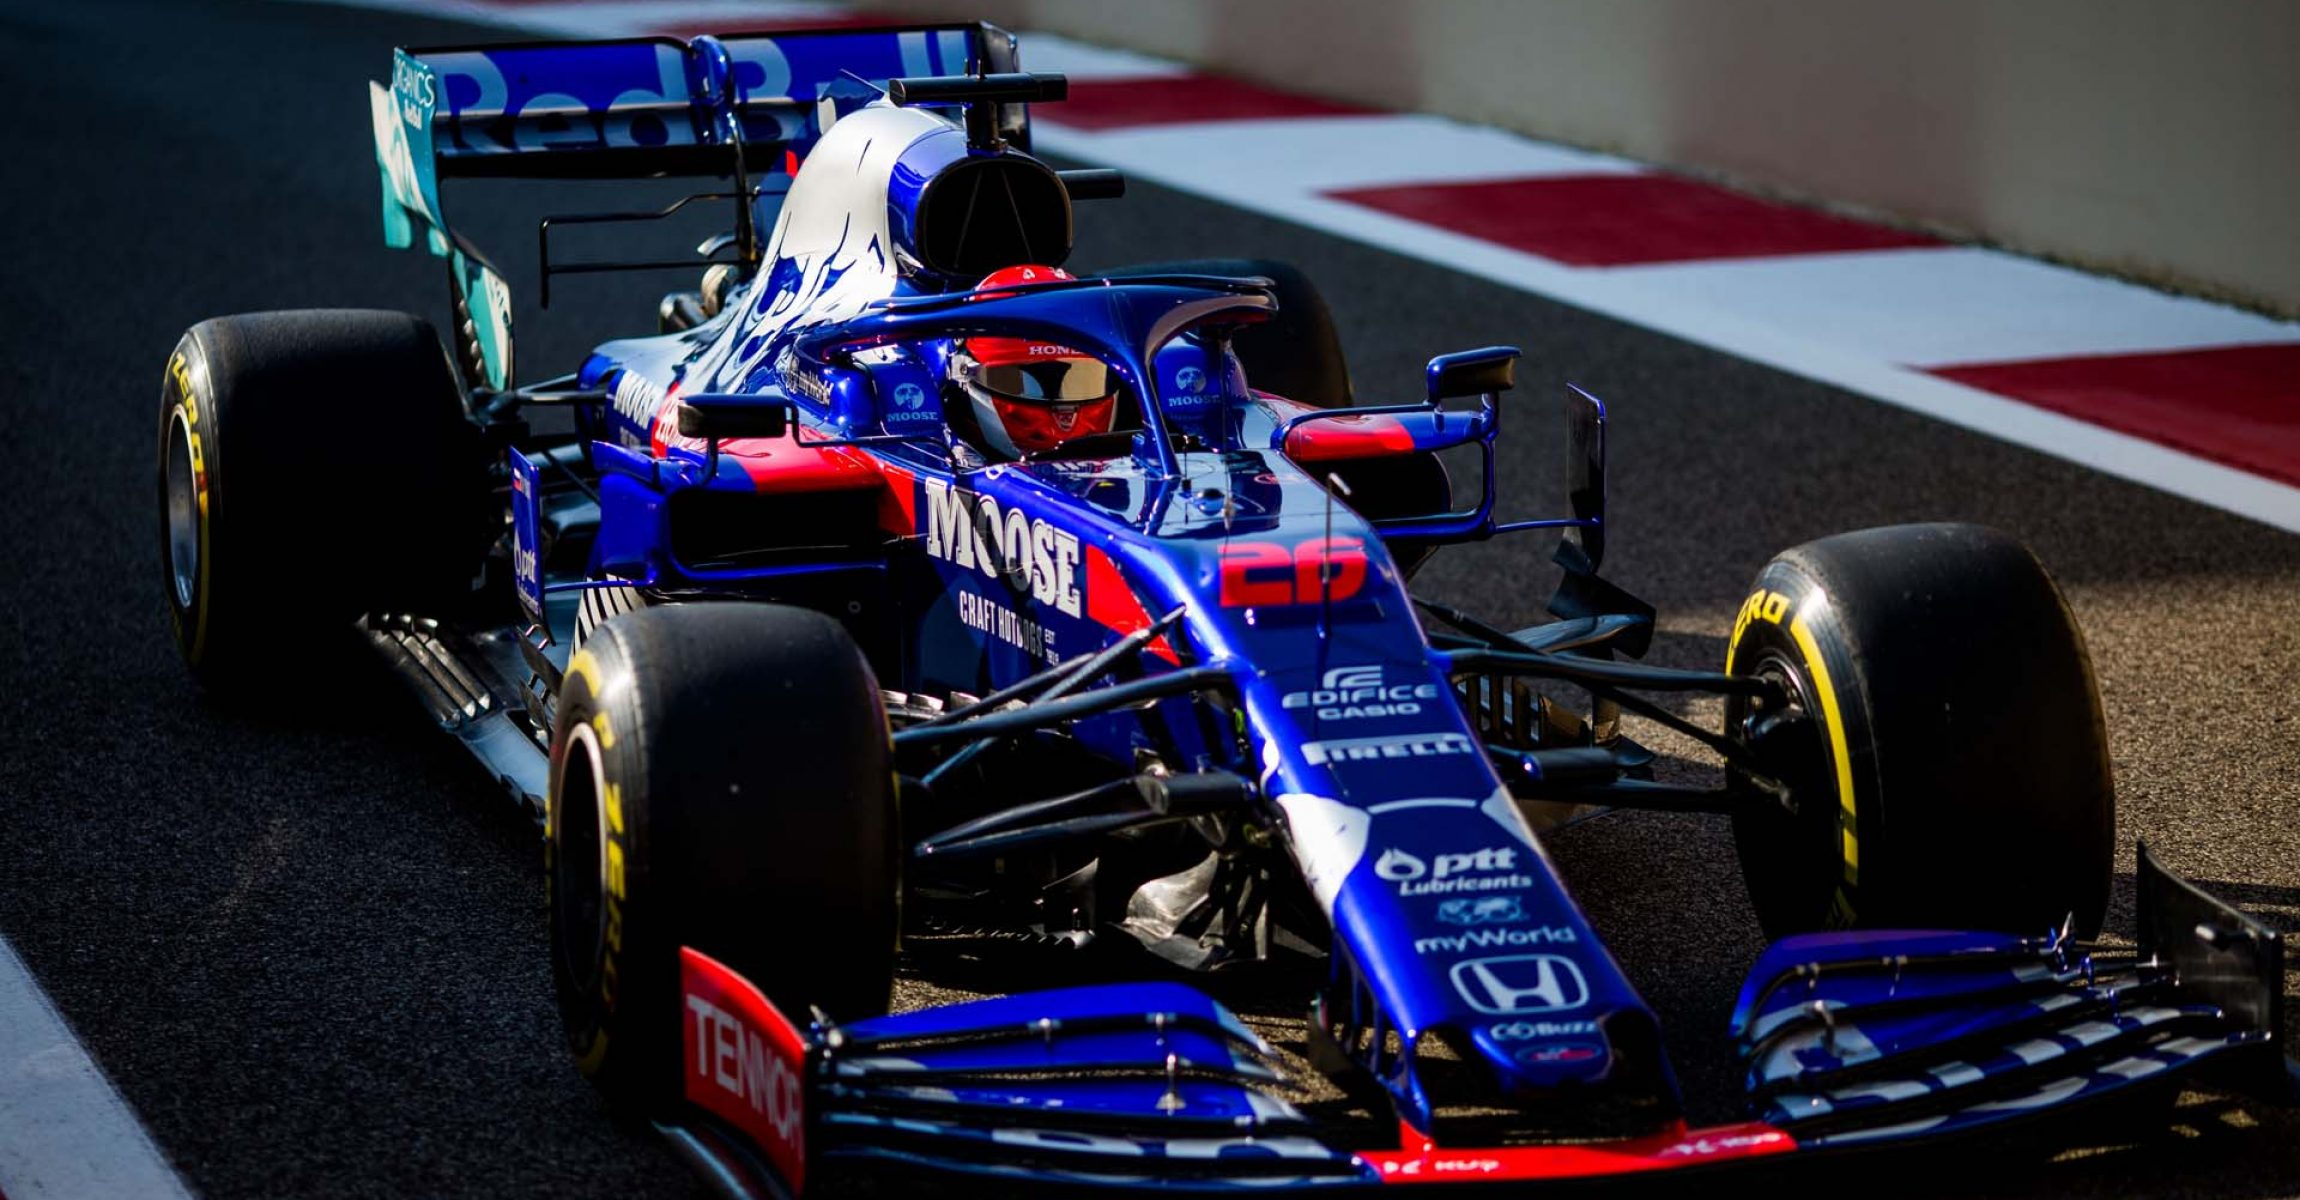 ABU DHABI, UNITED ARAB EMIRATES - NOVEMBER 29: Daniil Kvyat of Scuderia Toro Rosso and Russia during practice for the F1 Grand Prix of Abu Dhabi at Yas Marina Circuit on November 29, 2019 in Abu Dhabi, United Arab Emirates. (Photo by Peter Fox/Getty Images) // Getty Images / Red Bull Content Pool // AP-22B6GTGHS1W11 // Usage for editorial use only //